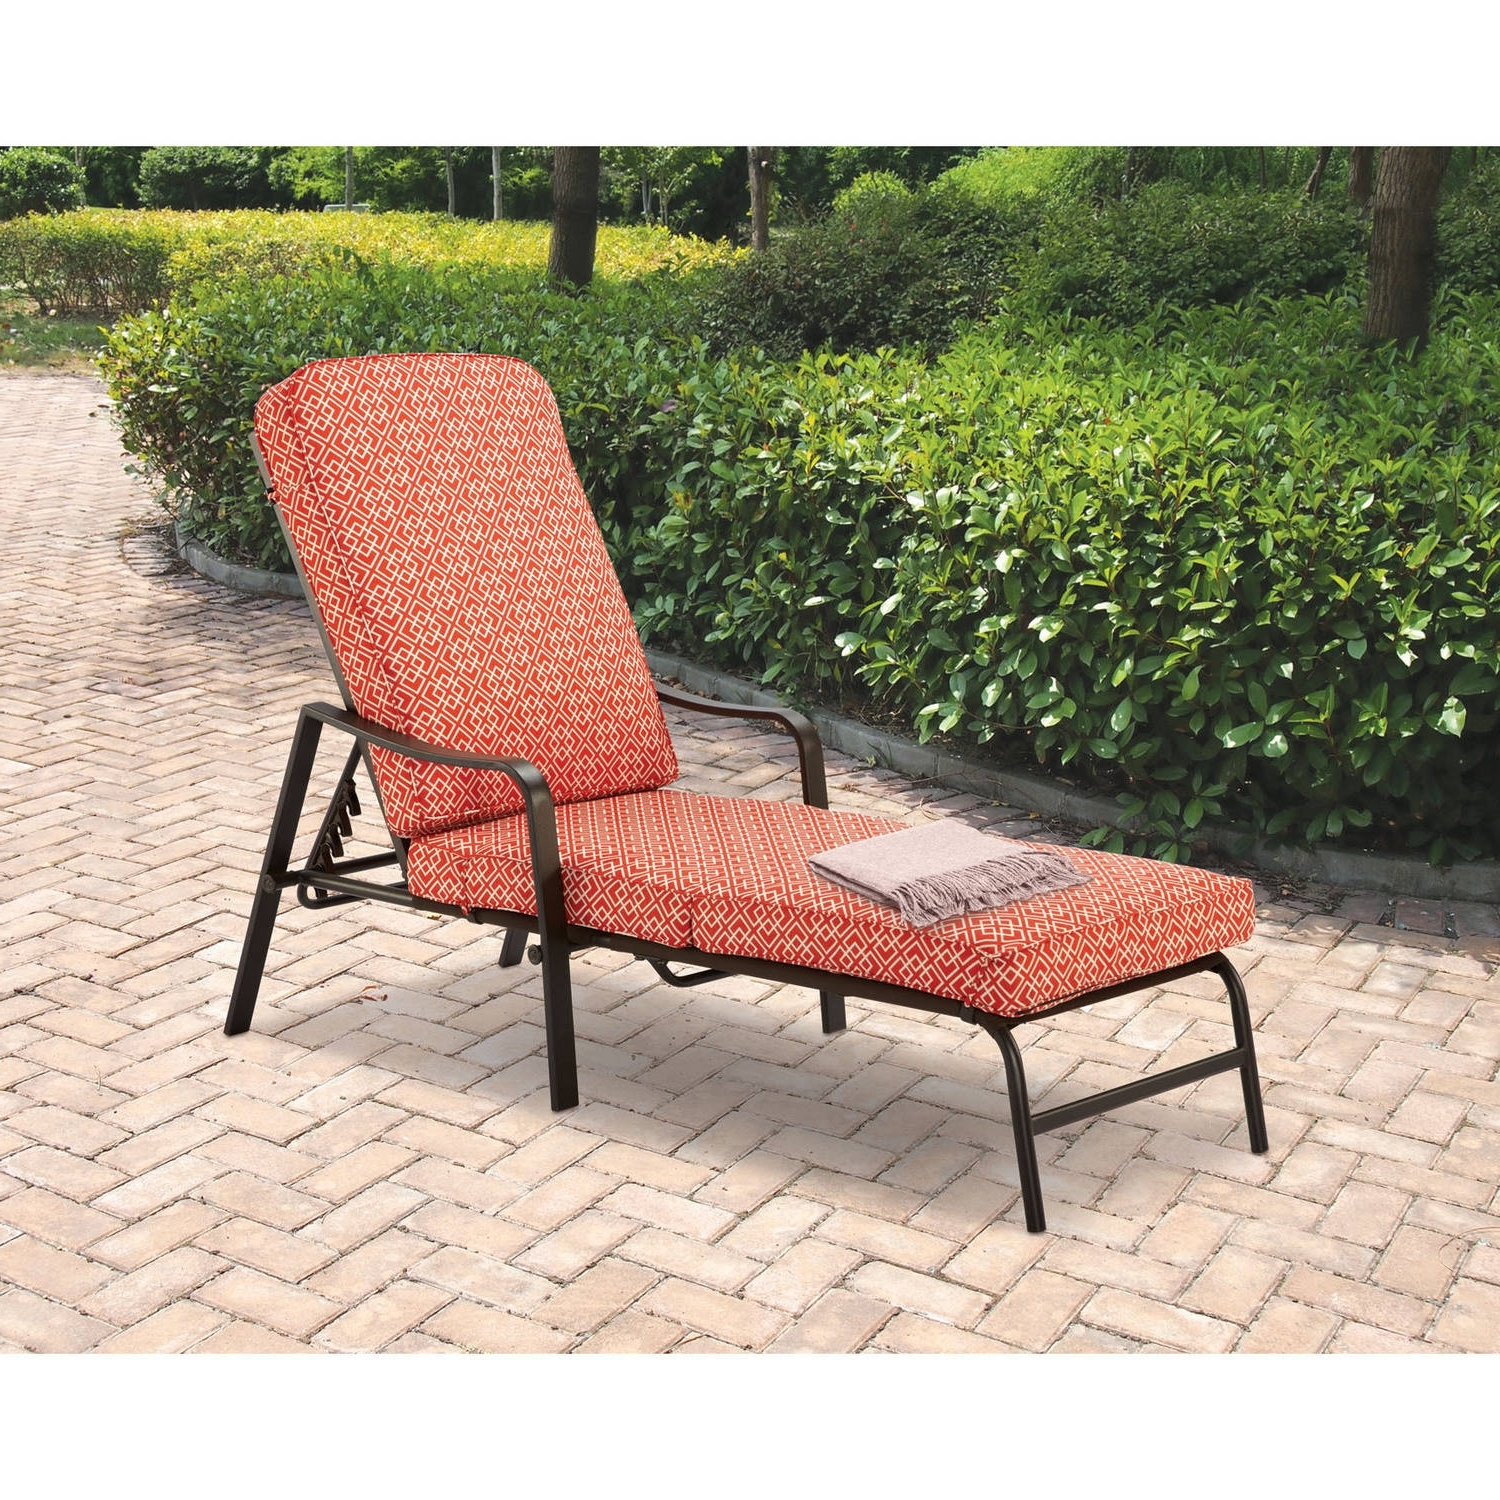 Well Known Outdoor Chaise Lounges Inside Mainstays Outdoor Chaise Lounge, Orange Geo Pattern – Walmart (View 11 of 15)